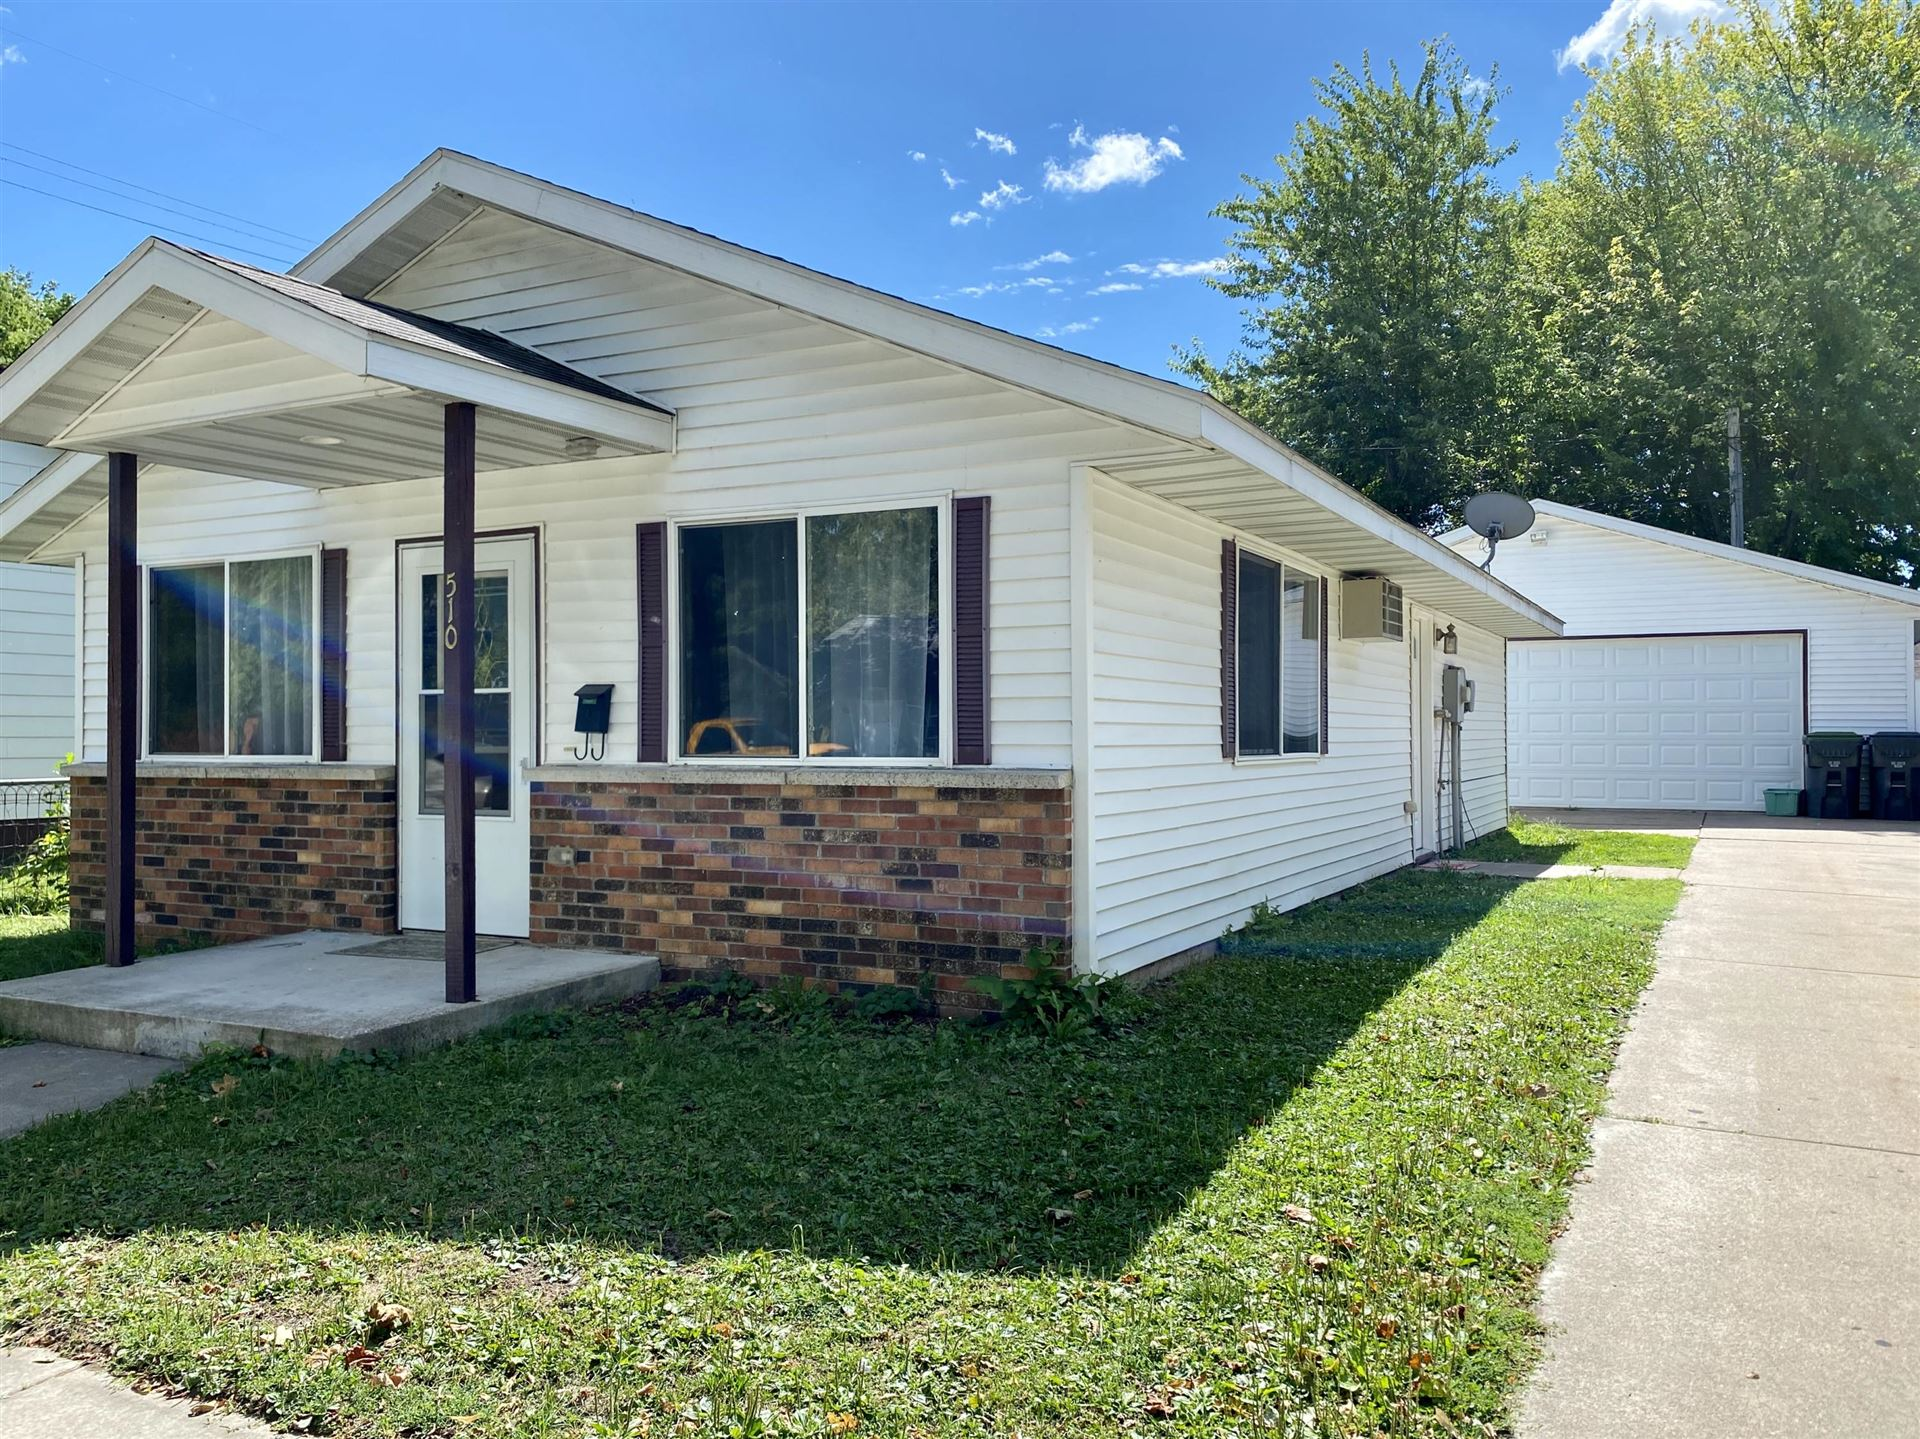 510 Johnson St, La Crosse, WI 54601 - MLS#: 1708538